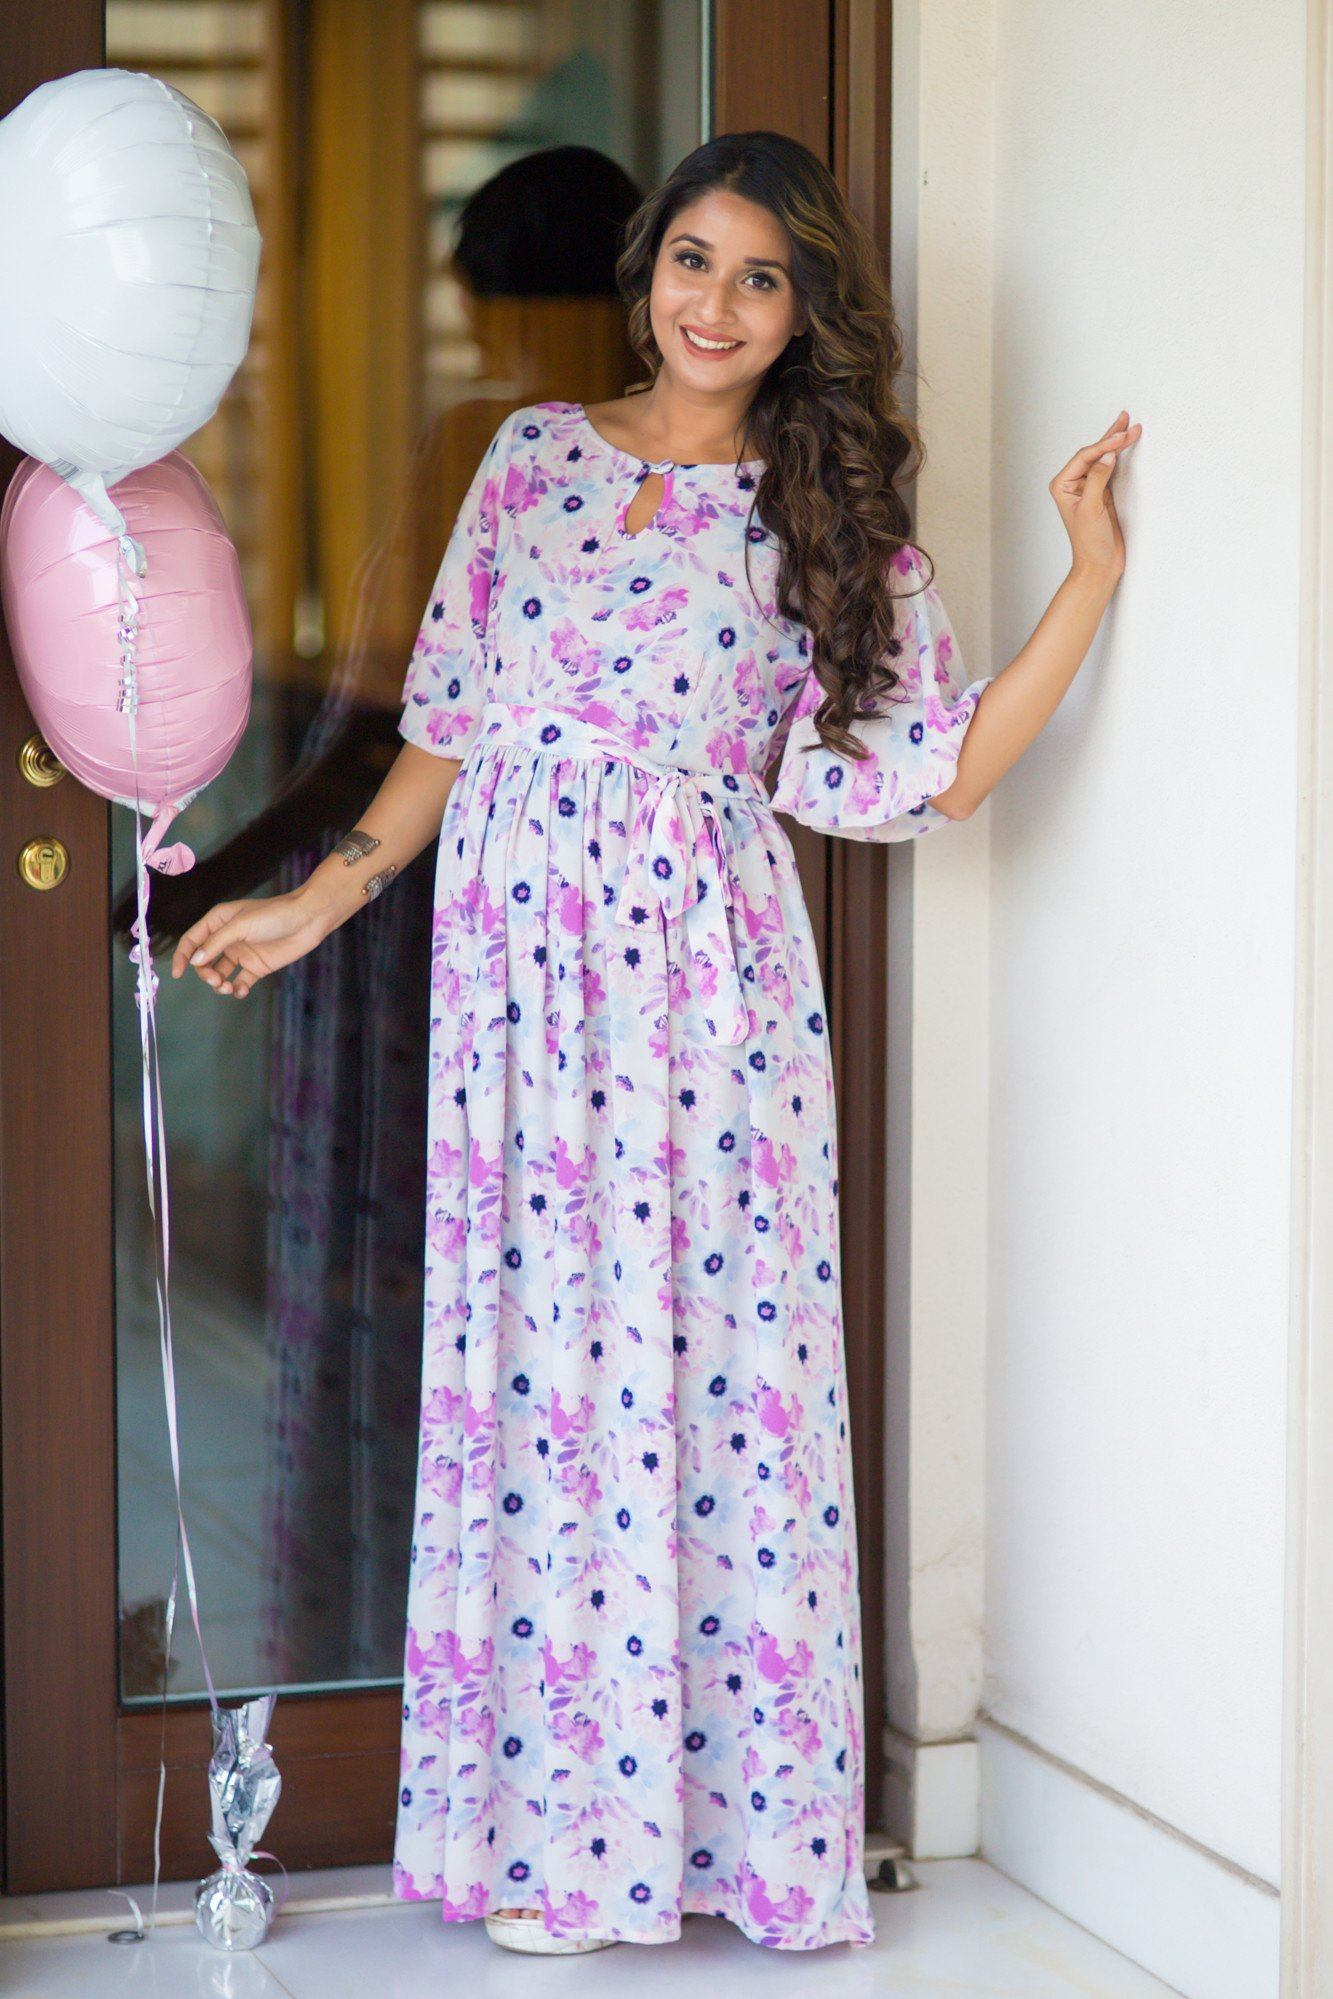 Spring Flower Luxe Maternity Maxi Dress